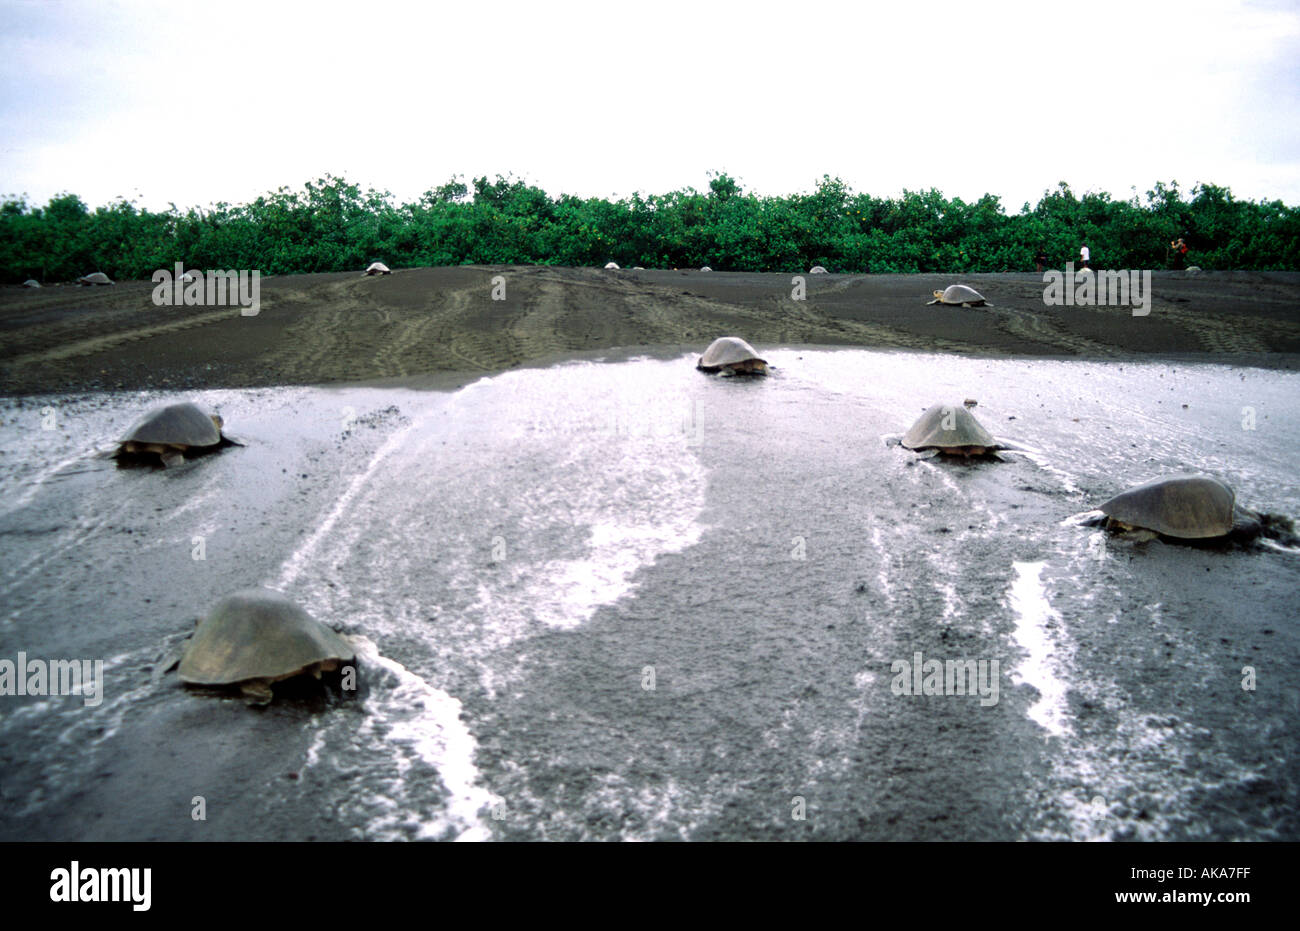 Olive Ridley turtles coming out to spawn. Ostional beach National Refuge. Costa Rica - Stock Image